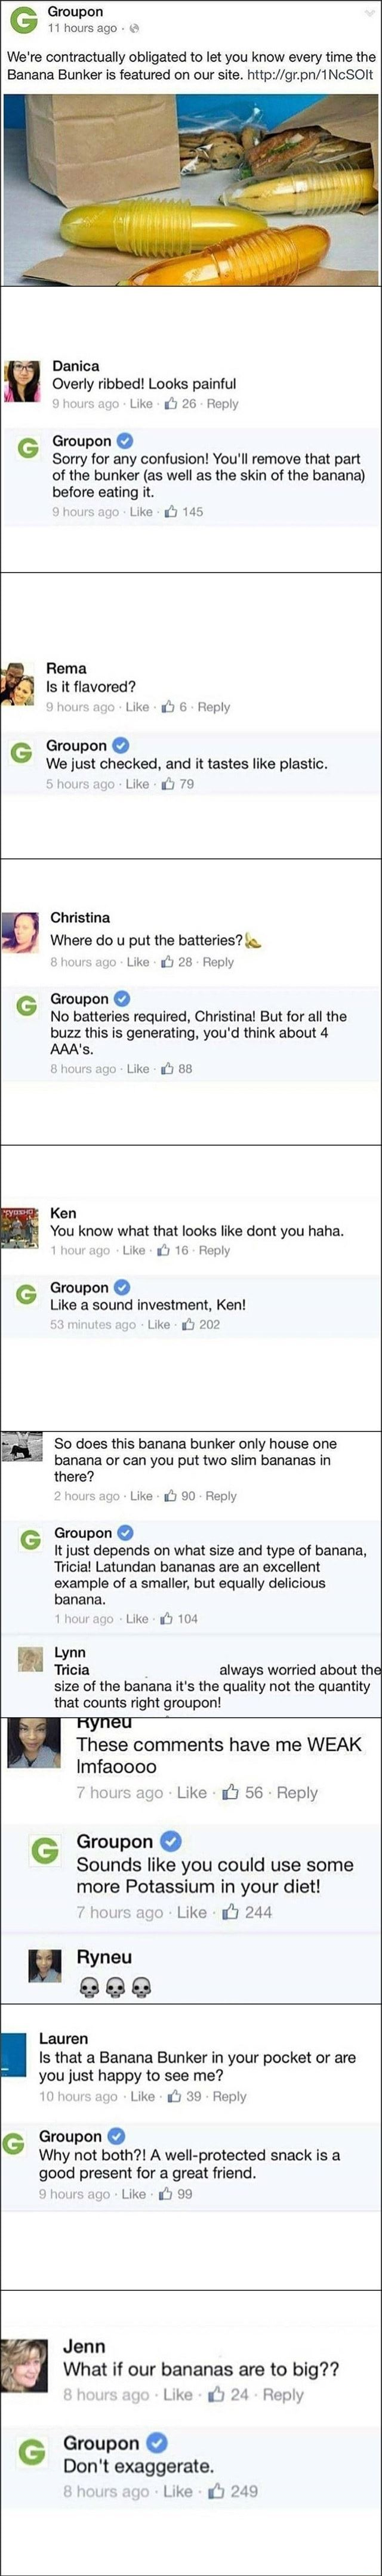 The Banana Bunker